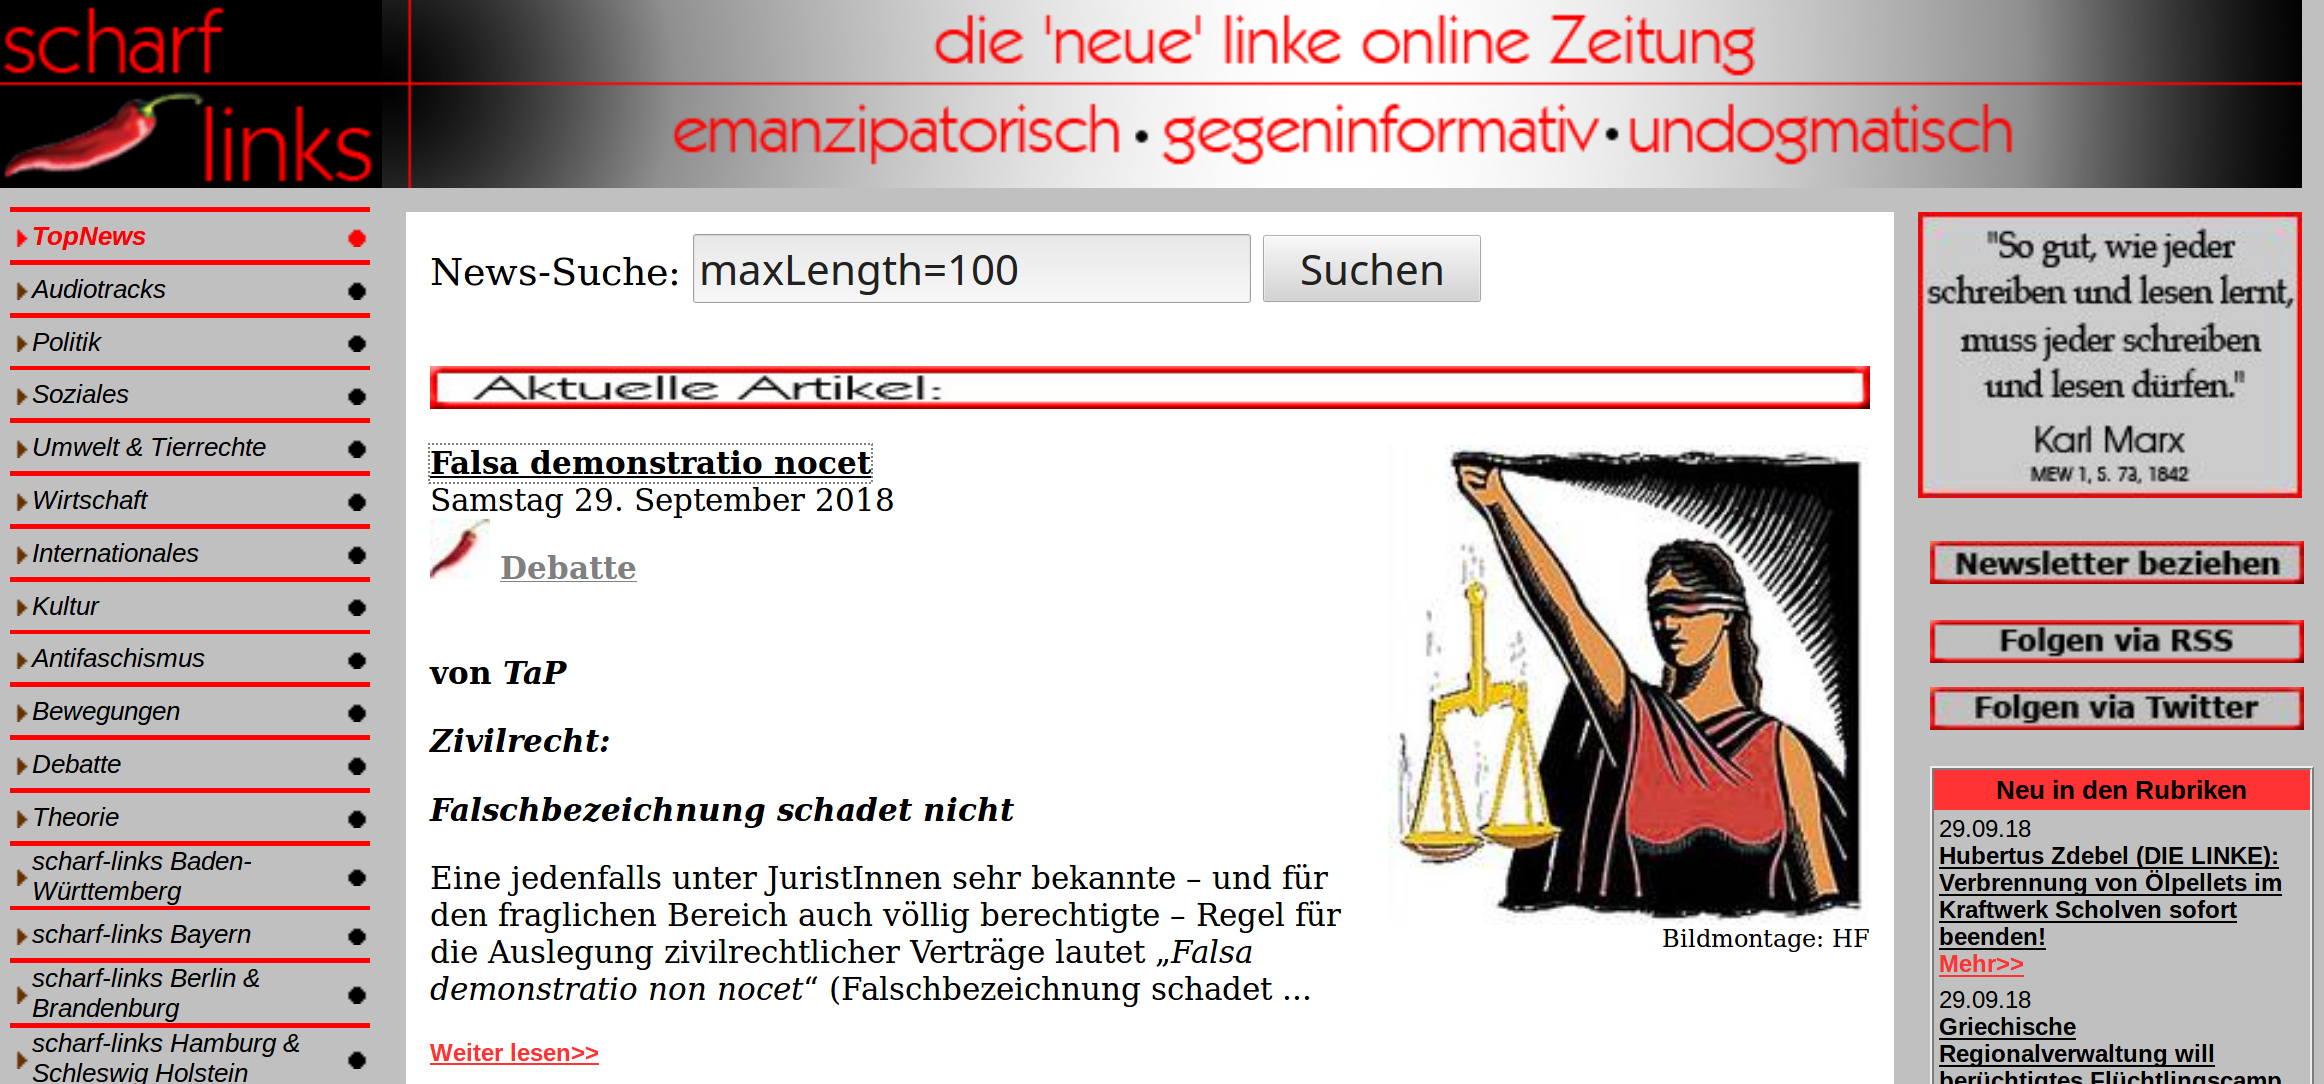 Falsa demonstratio nocet (von Tap - bei scharf-links v. 29.09.2018)